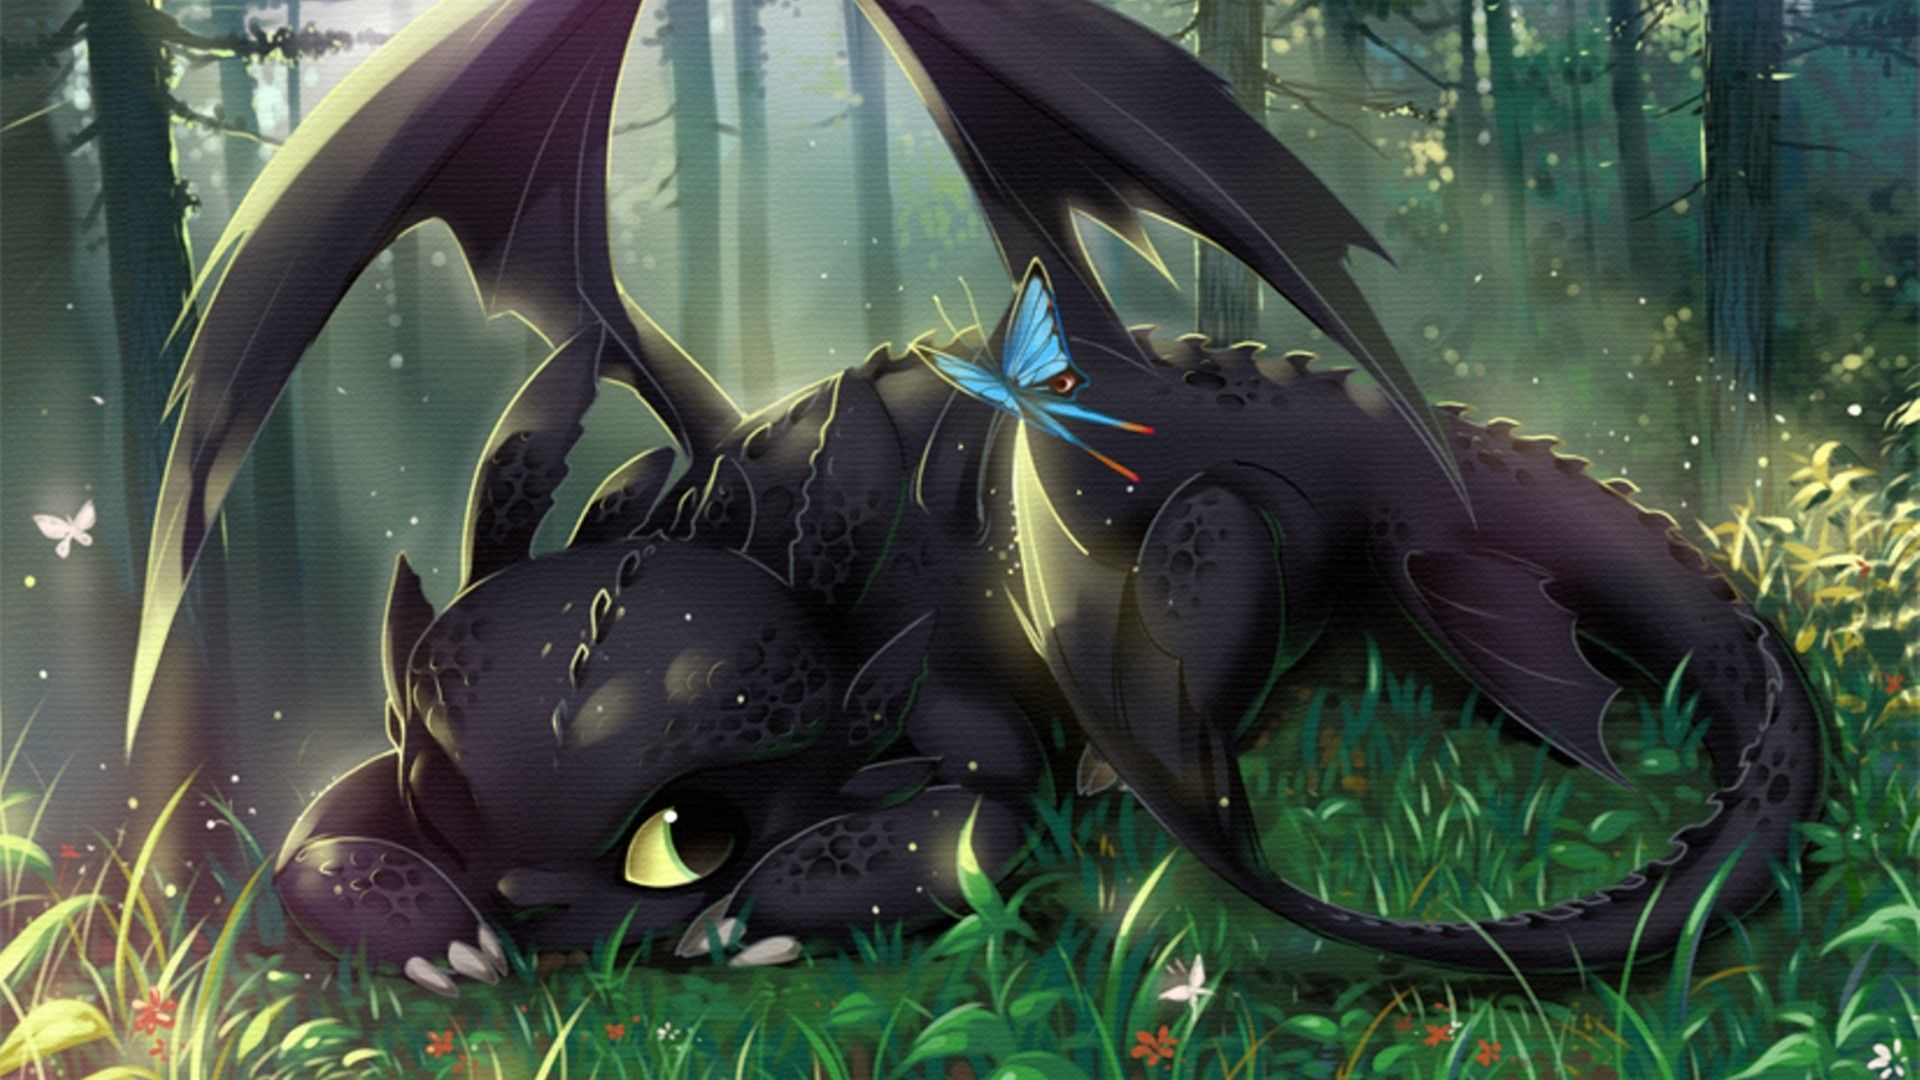 Toothless Wallpaper By SweetDevilStitch On DeviantArt 1920x1280 40 Wallpapers